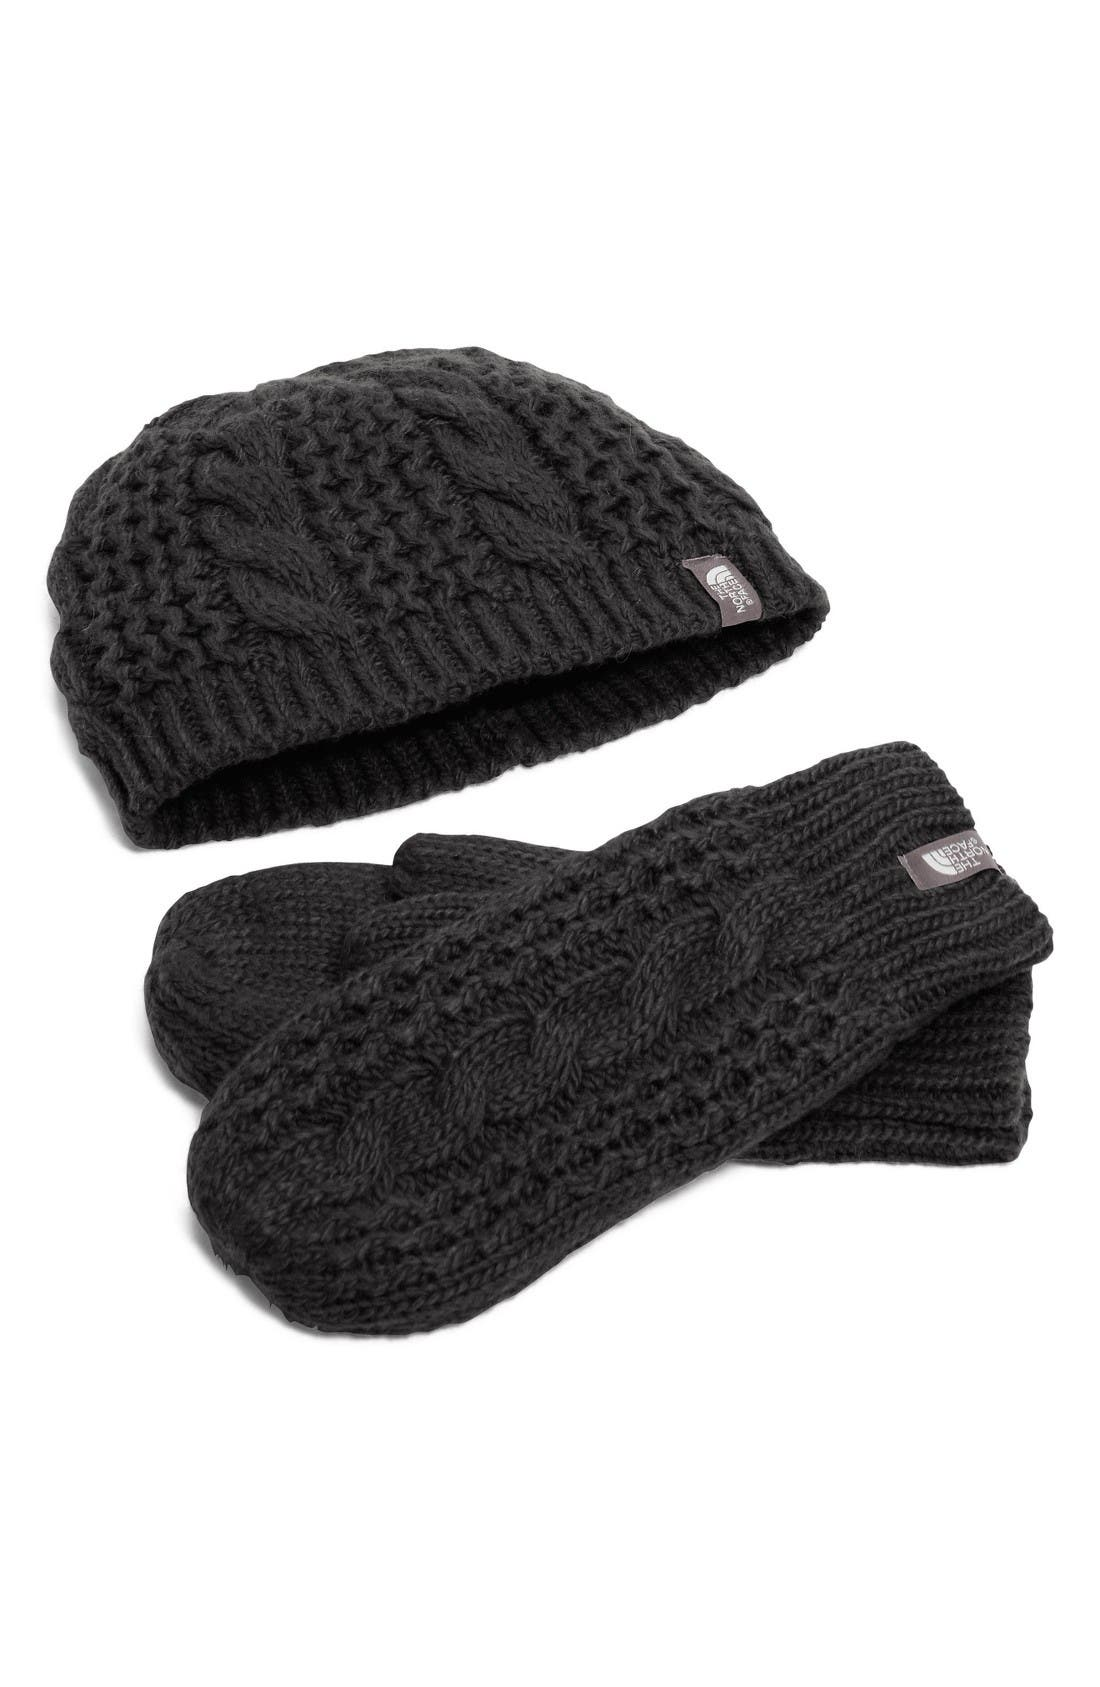 Alternate Image 1 Selected - The North Face Minna Beanie & Mittens